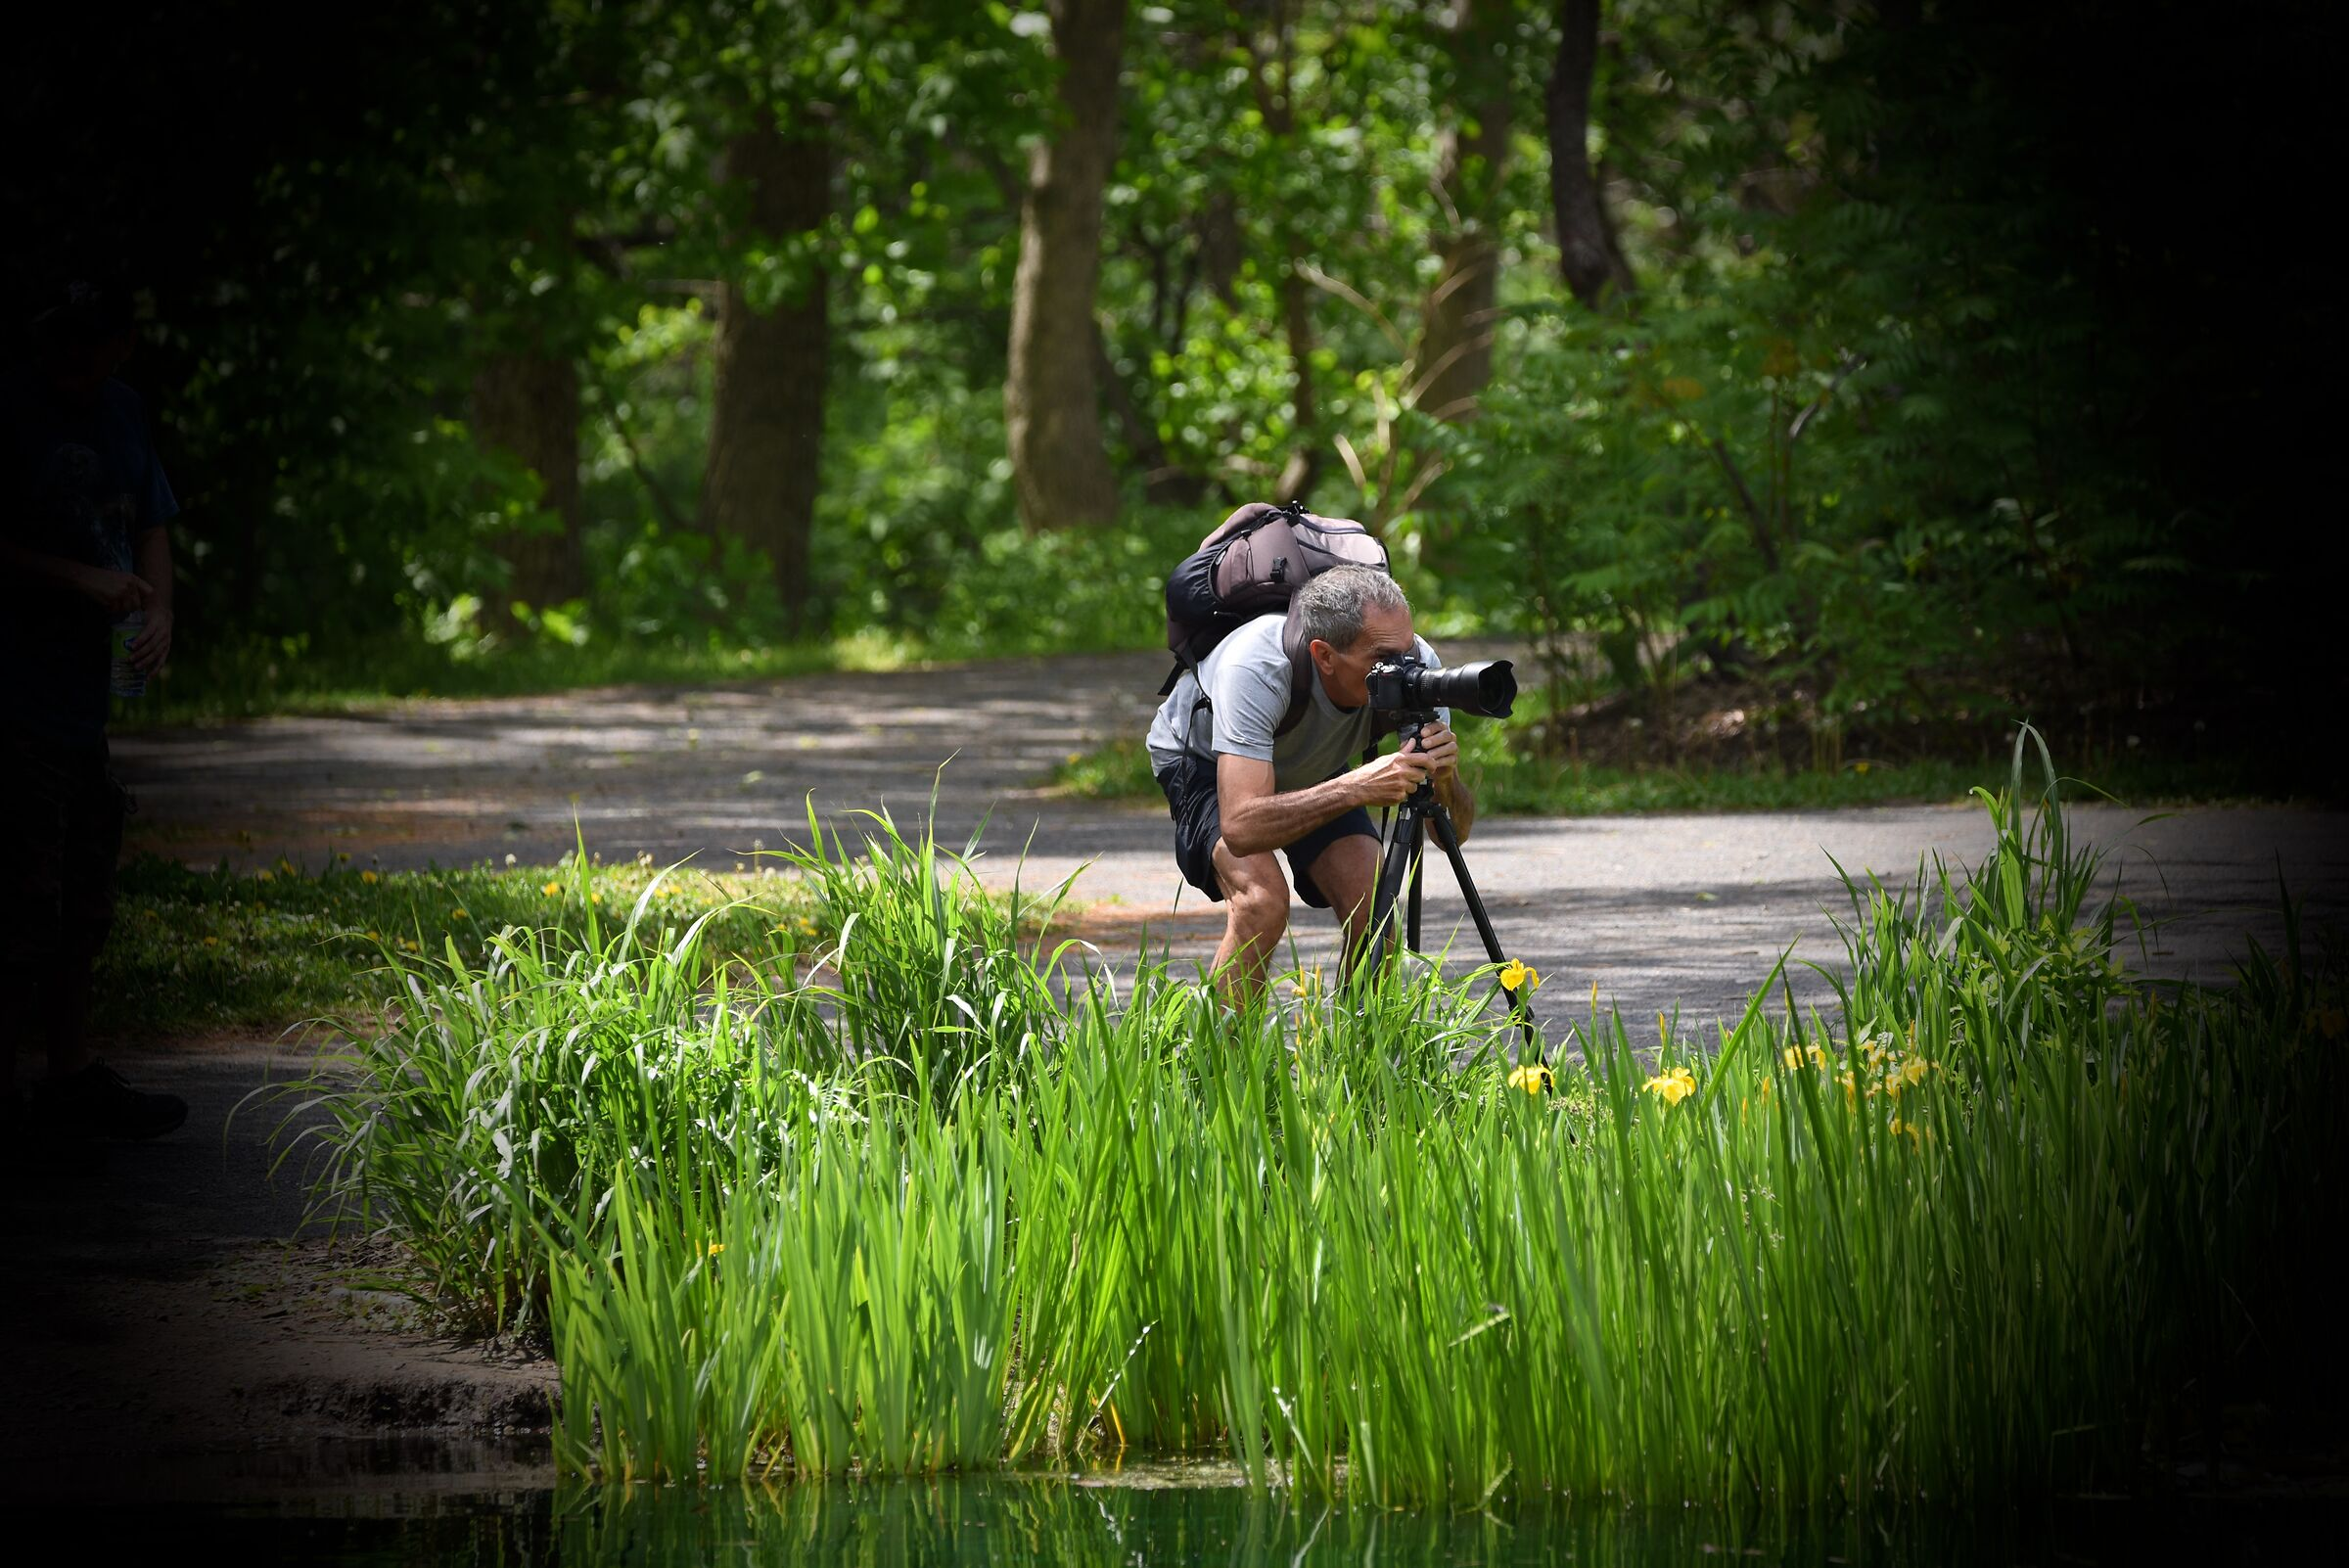 photographer at work '' Action '' Quebec City (Park)...